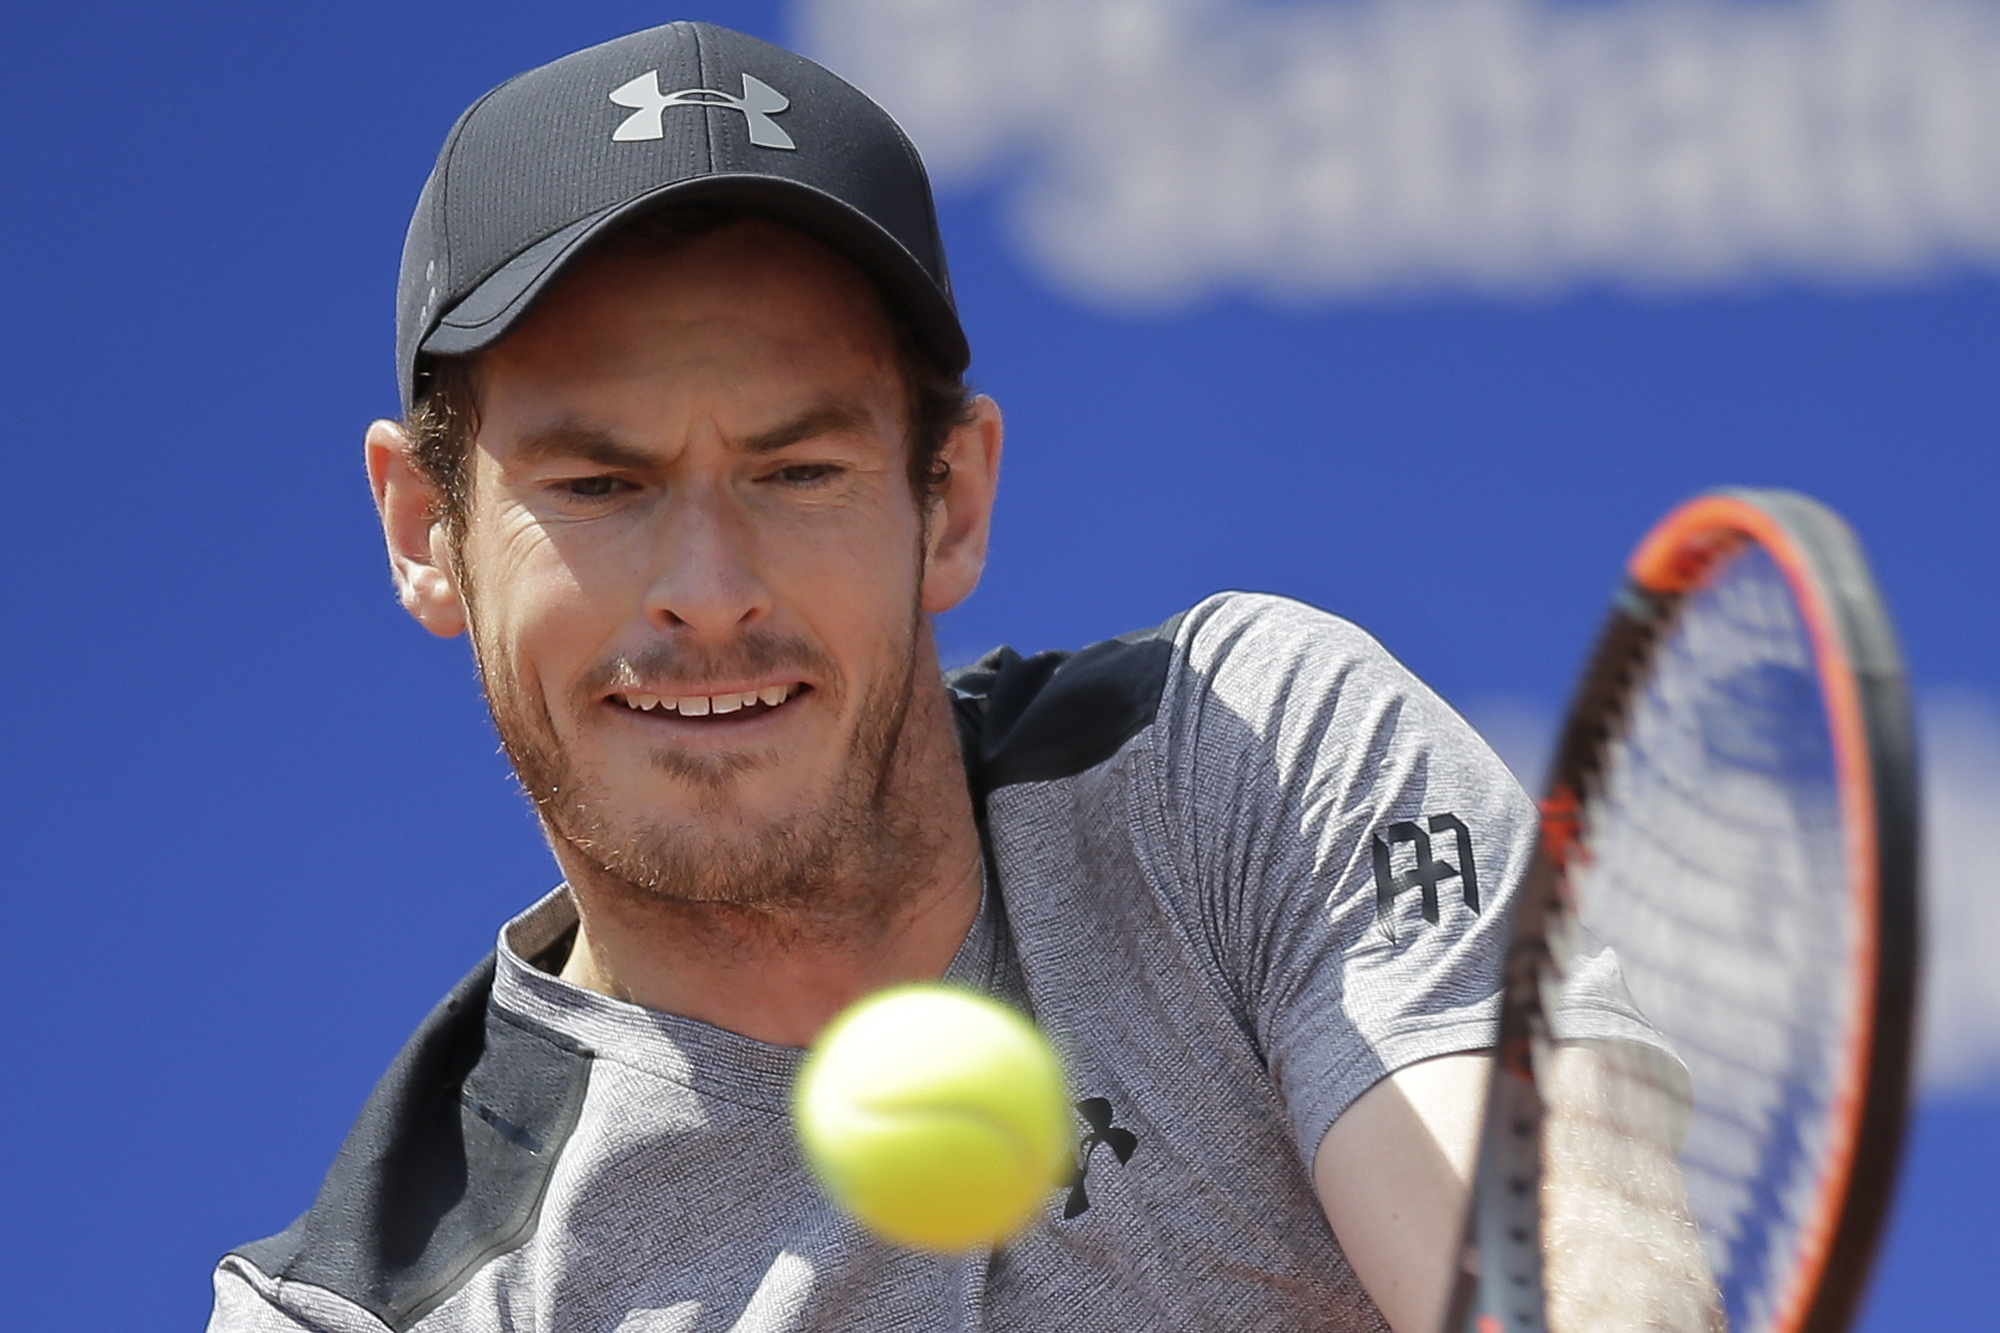 Andy Murray of Britain returns the ball to Albert Ramos-Vinolas of Spain during a quarterfinal match at the Barcelona Open Tennis Tournament in Barcelona, Spain, Friday, April 28, 2017. (AP Photo/Manu Fernandez)